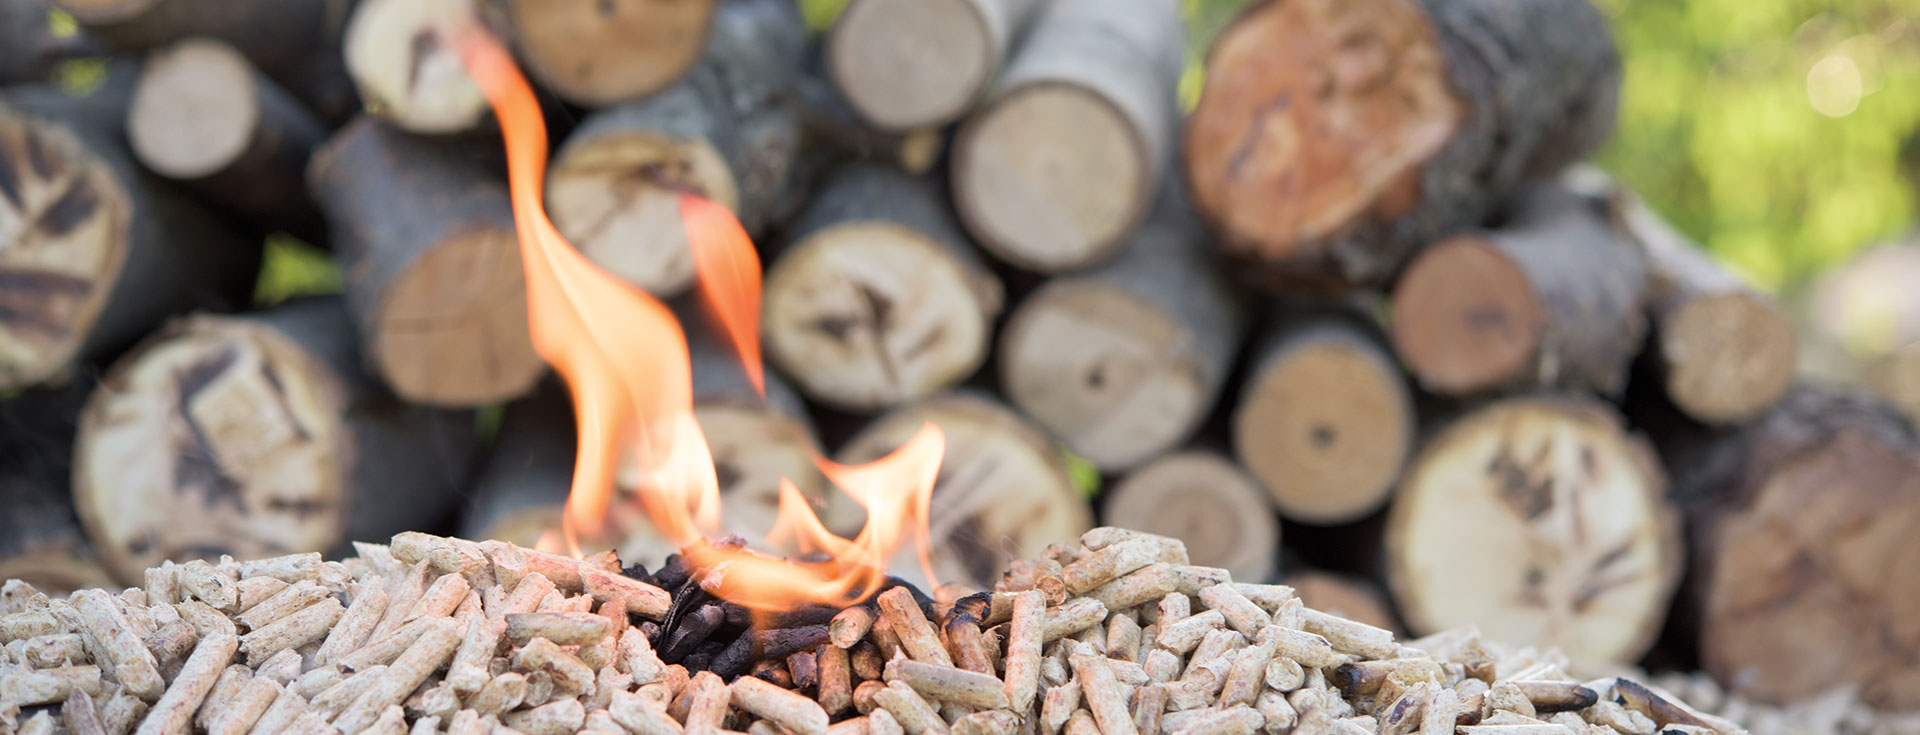 Fuel Wood, Briquettes, and Bark Mulch